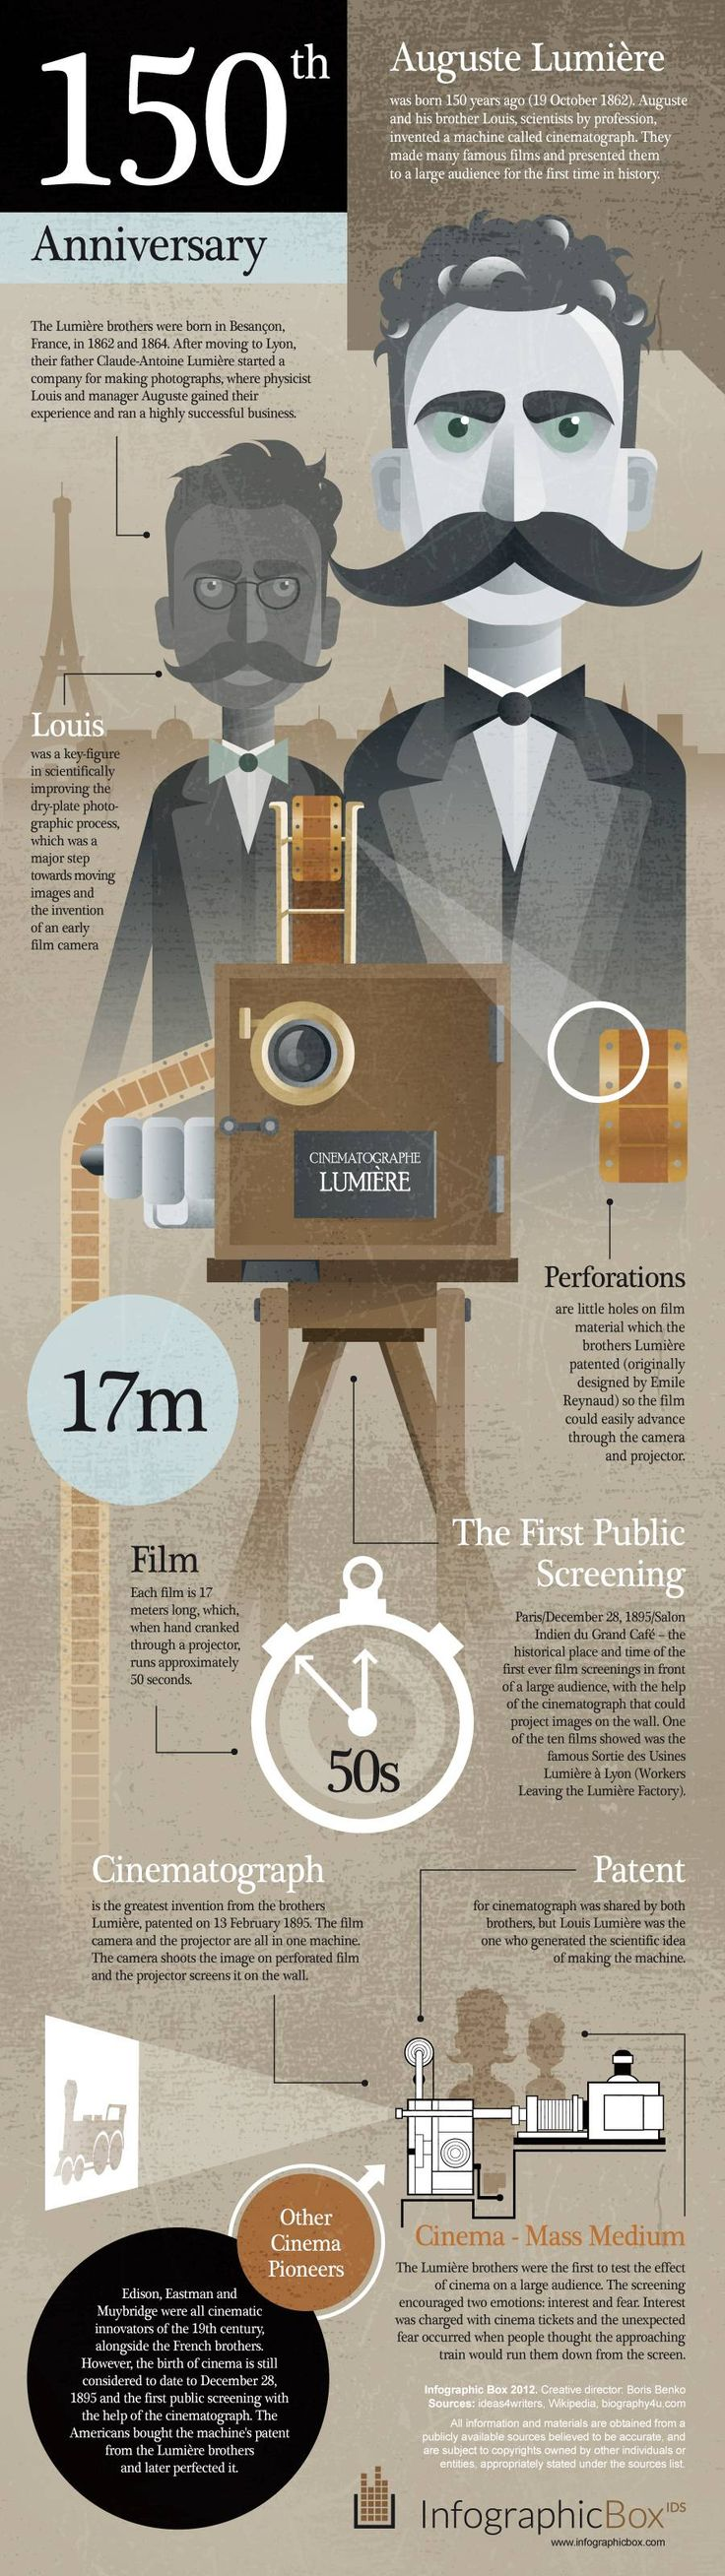 Auguste Lumière - one of the The Lumière Brothers - the first cinematographers. Filmmaking Infographics - Imgur